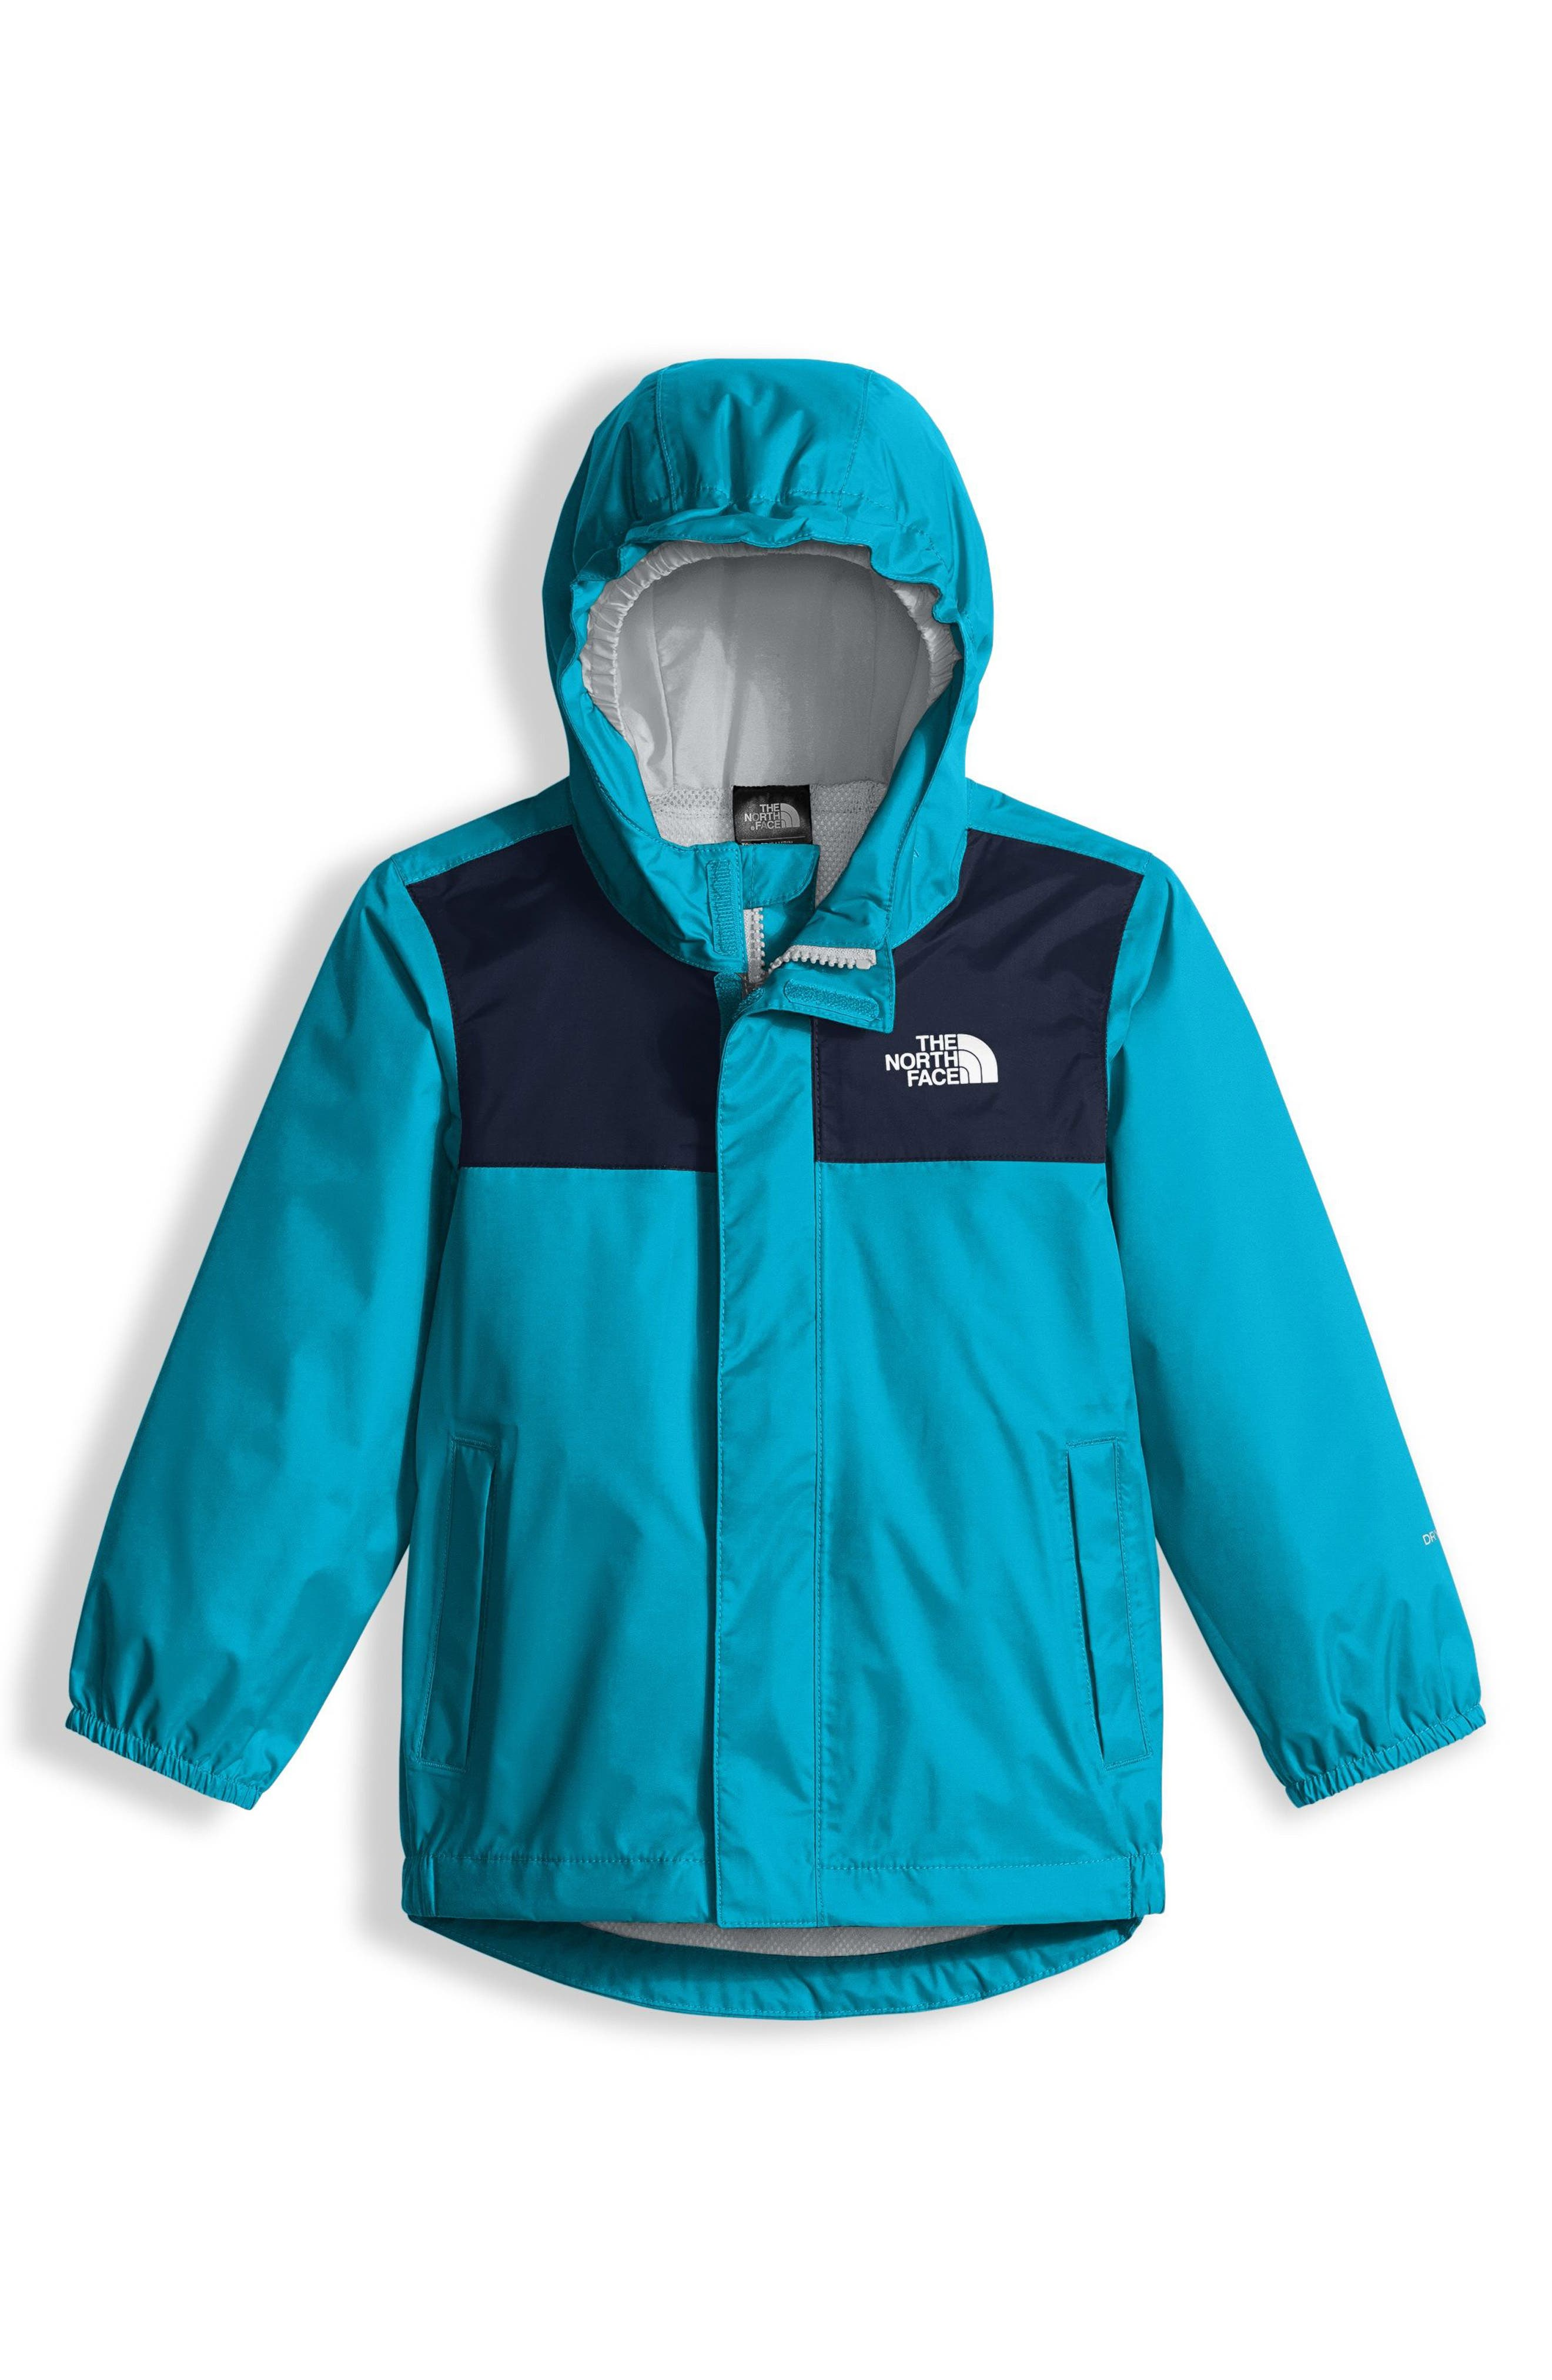 Tailout Hooded Rain Jacket,                             Main thumbnail 1, color,                             Turquoise Blue